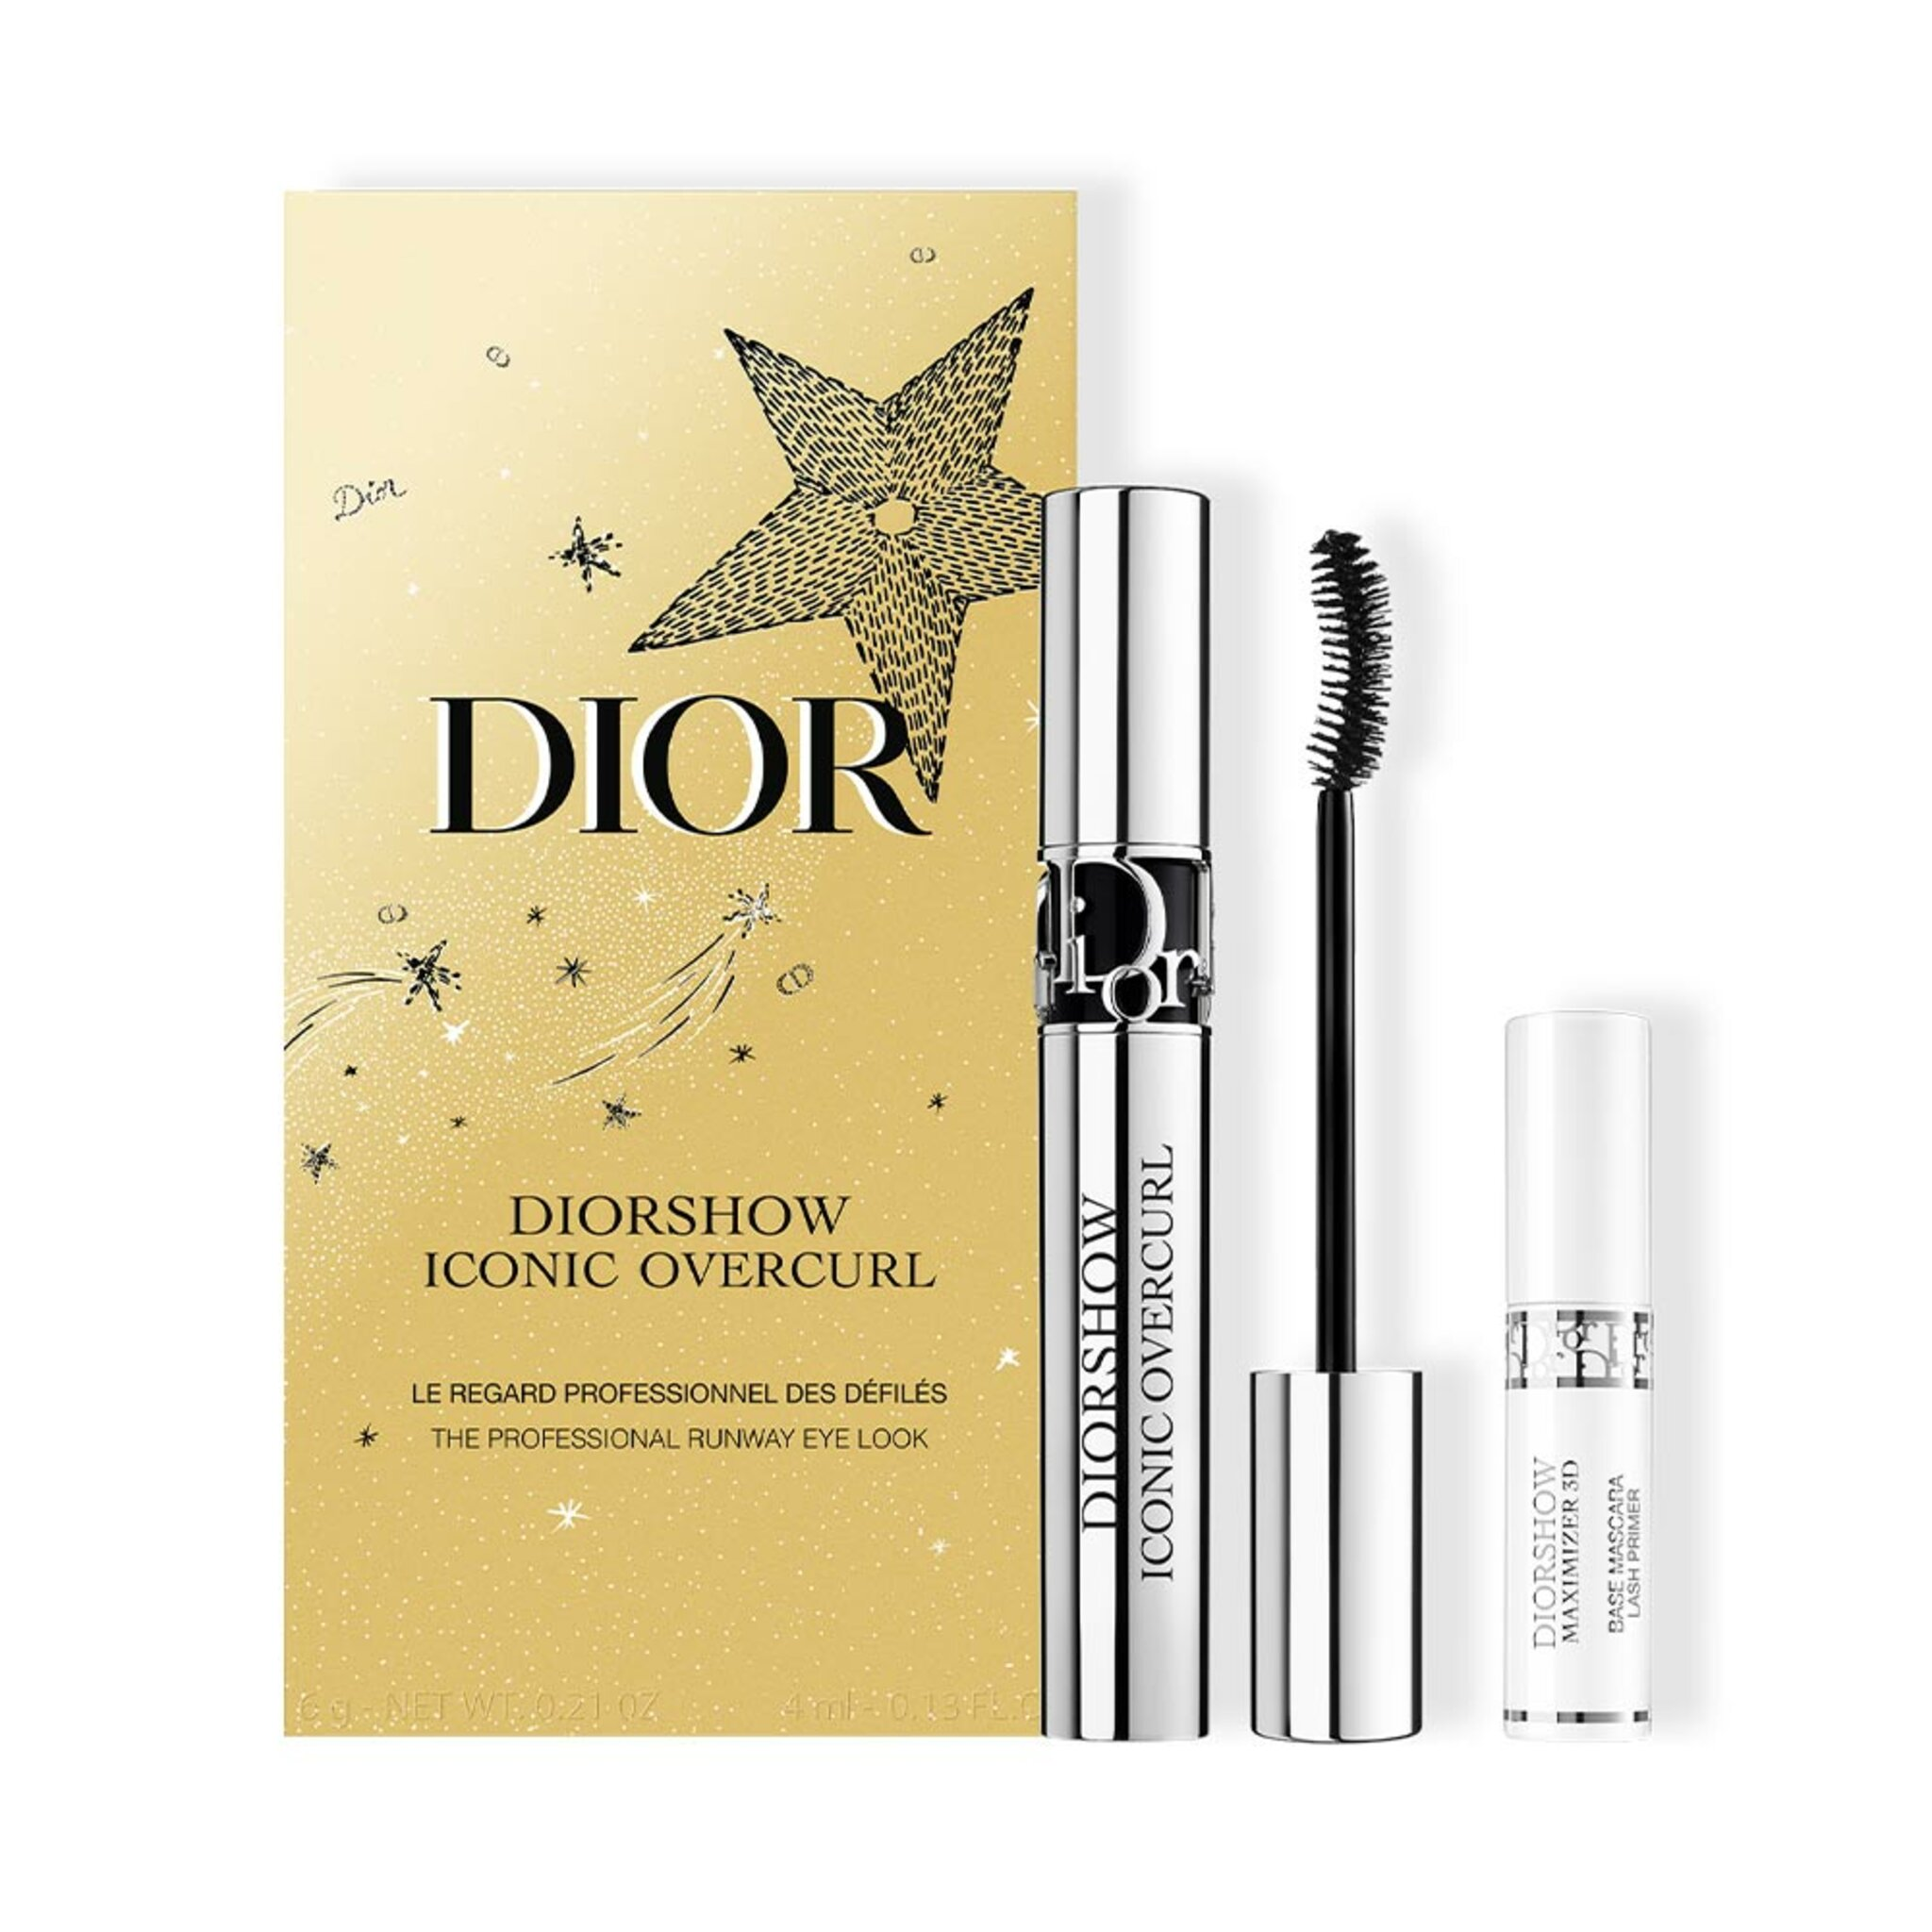 Dior Holiday Couture Collection Mascara and Serum-Primer Set